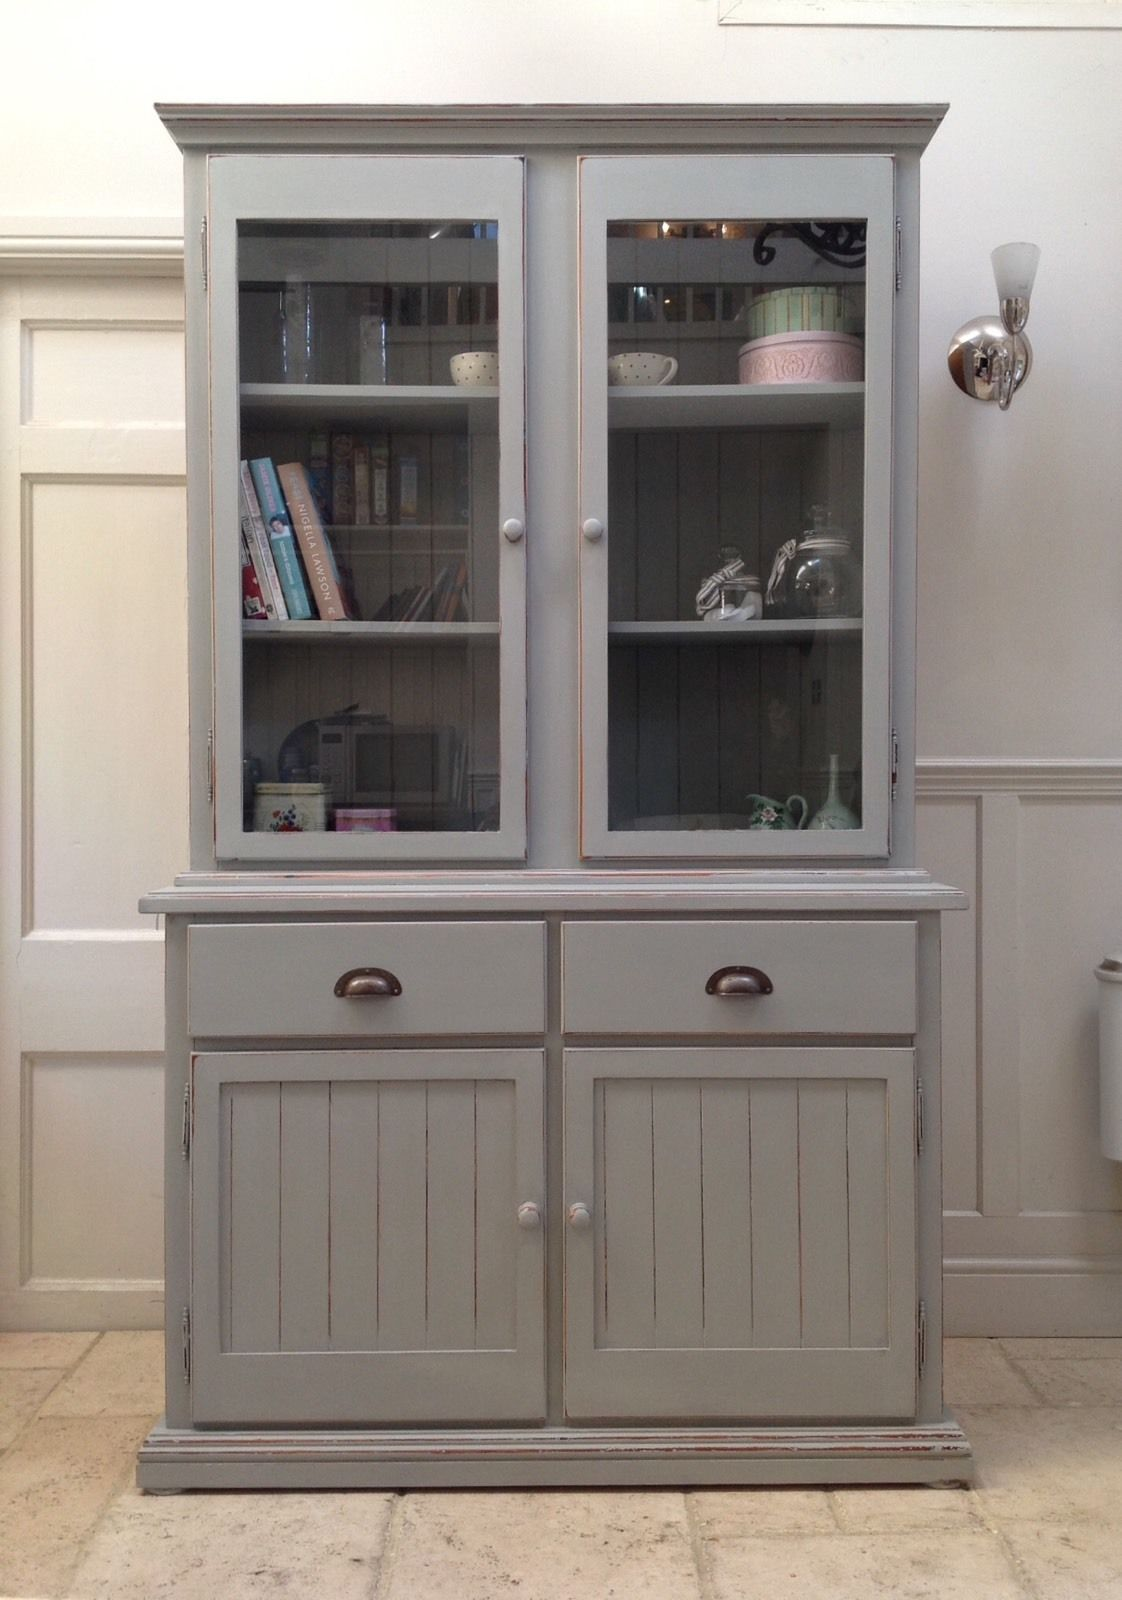 Kitchen Bookcase Painted Grey Glazed Bookcase Pine Dresser Larder Kitchen Cabinet Unit